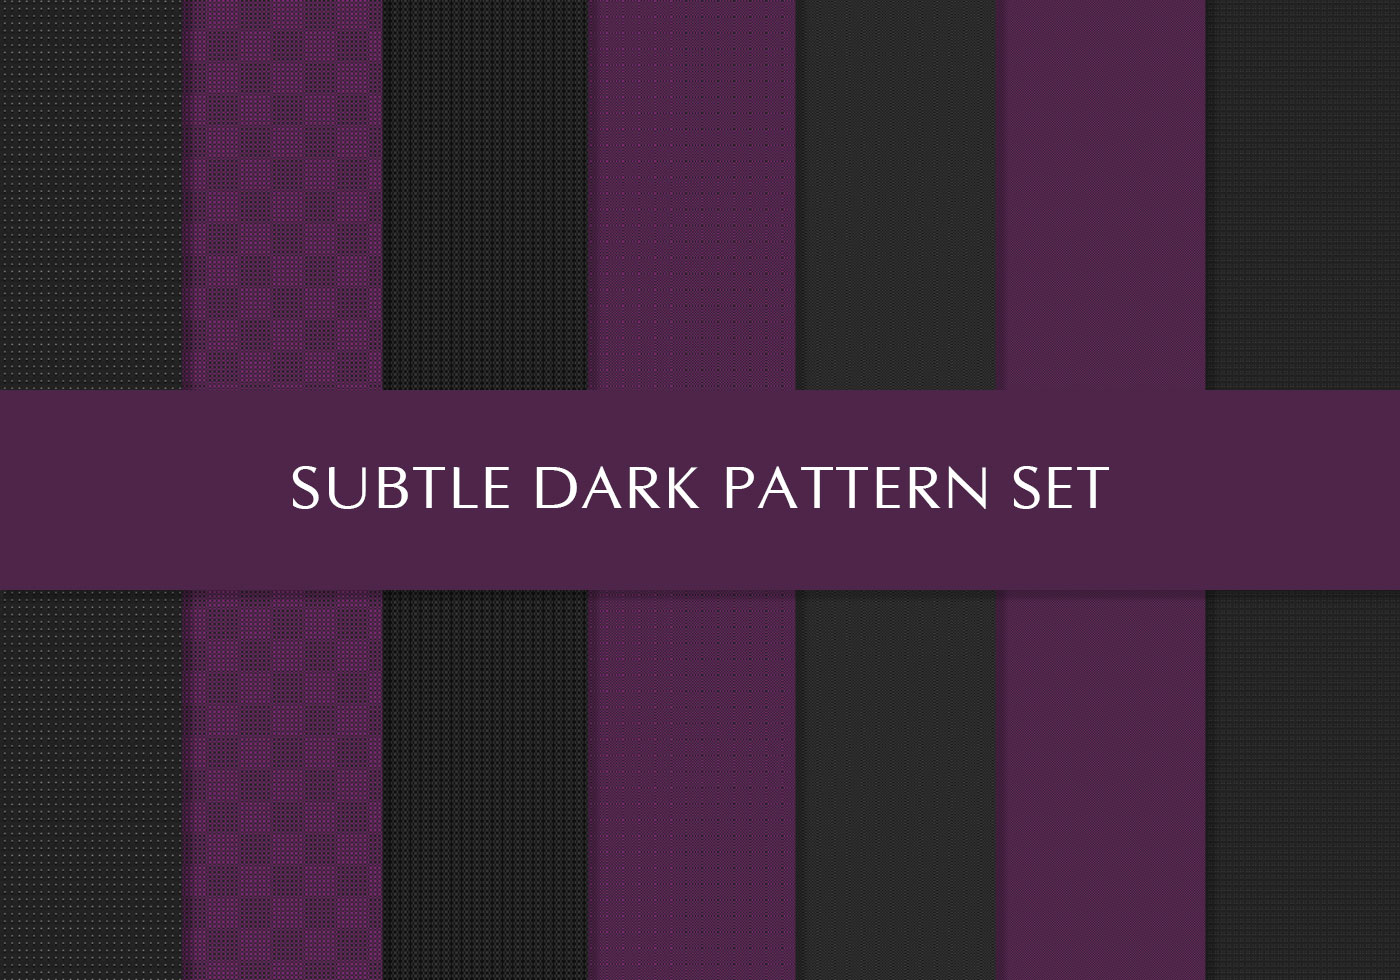 Free Royal Purple And Black Deluxe Patterns